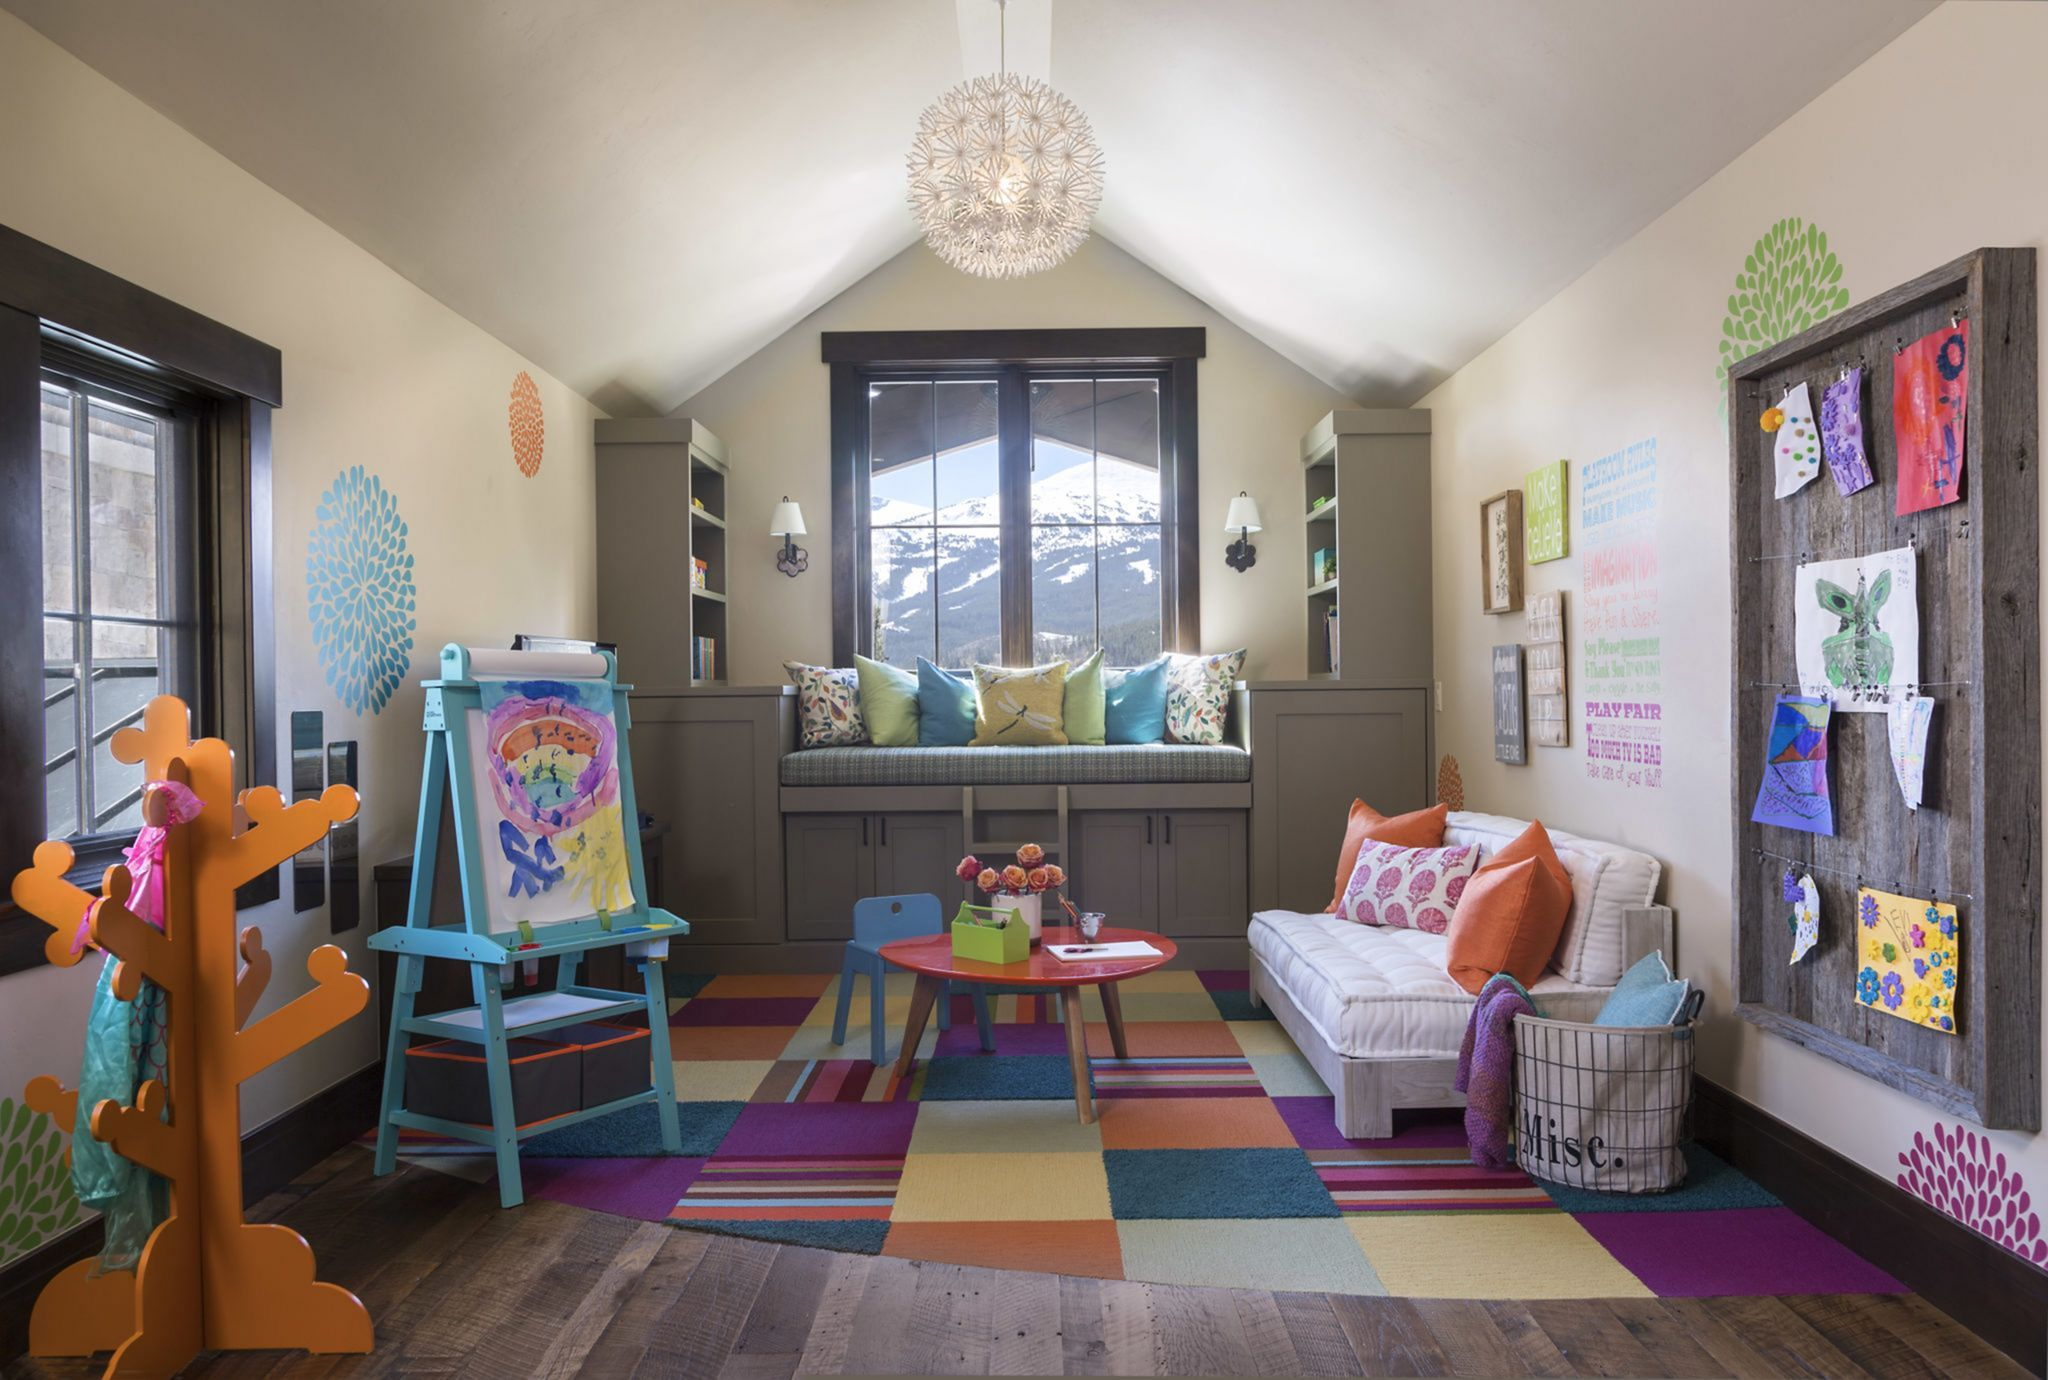 30 Fun Playroom Design And Decoration Ideas For Children